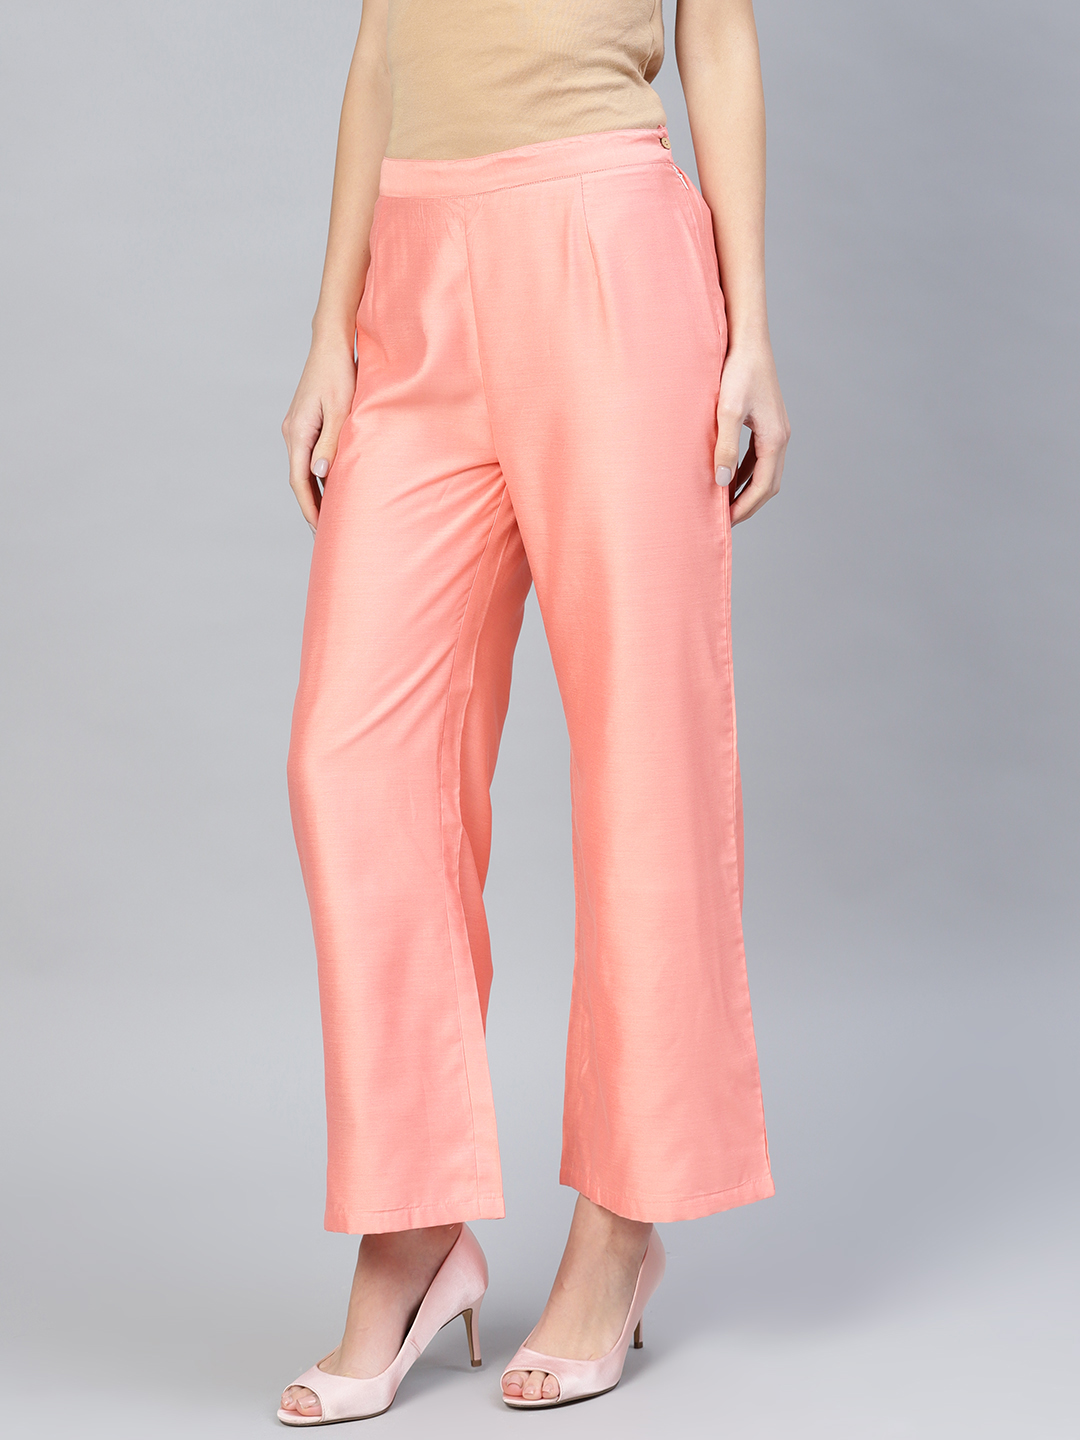 Buy Baby Pink Palazzo Pant Cotton Silk For Best Price Reviews Free Shipping